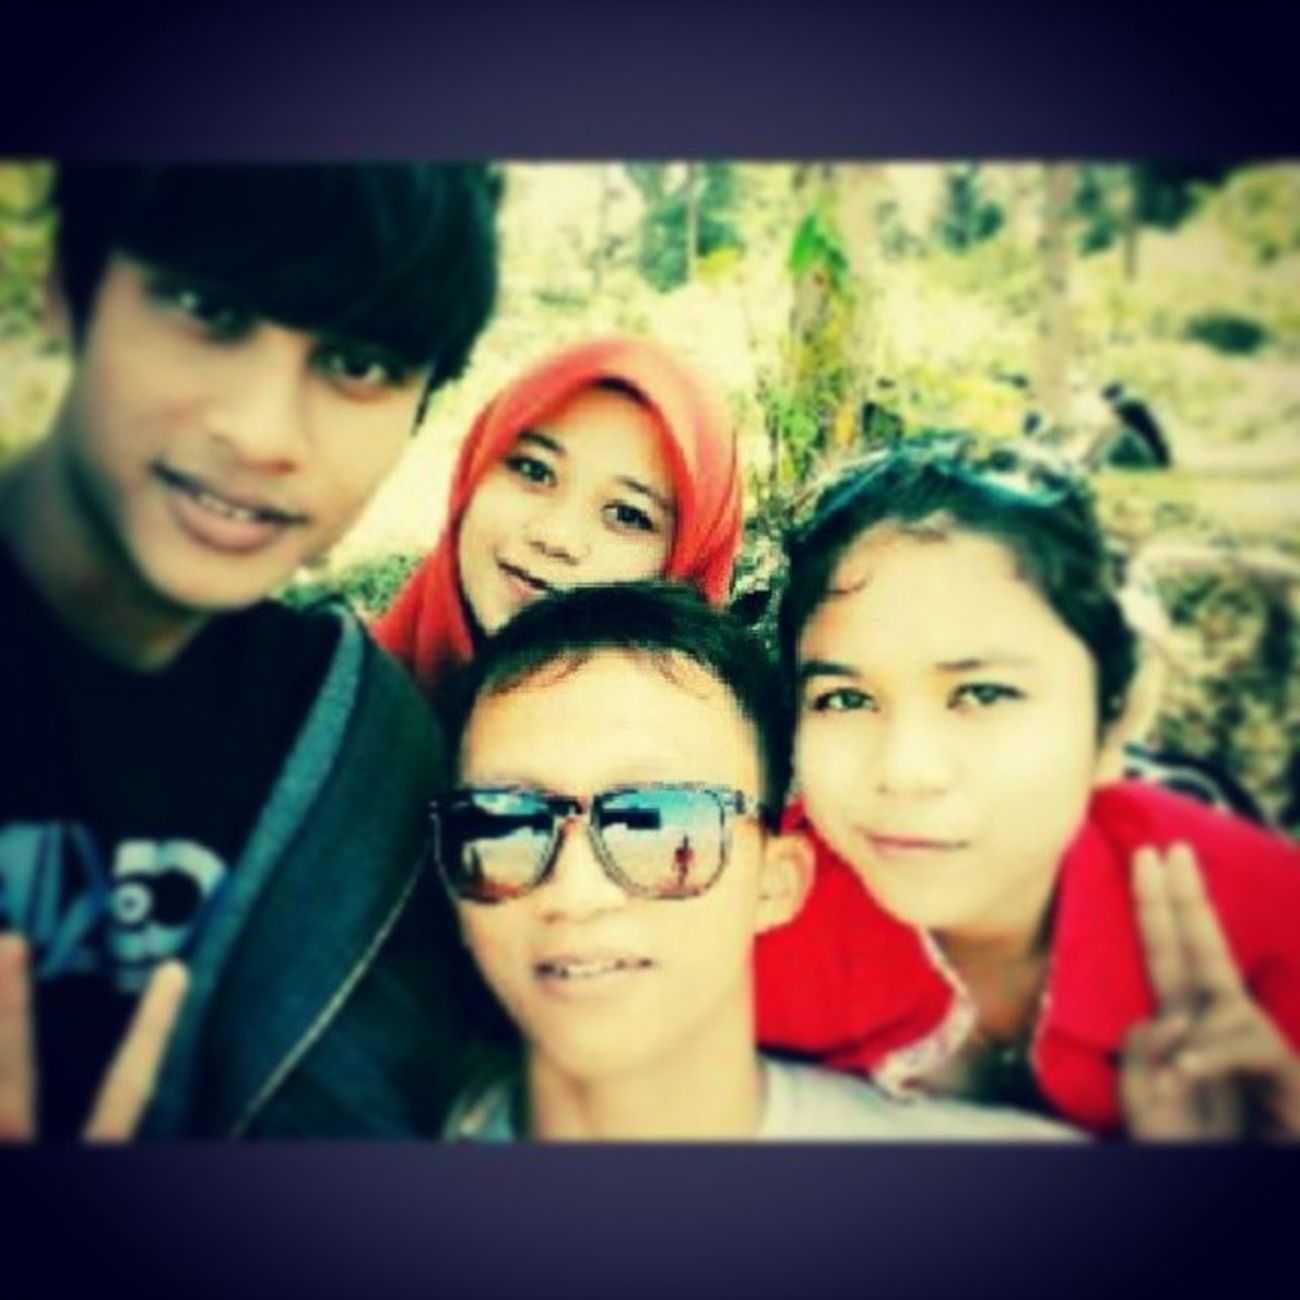 Beach Ujunggentengbeach Holiday Family selfie lol